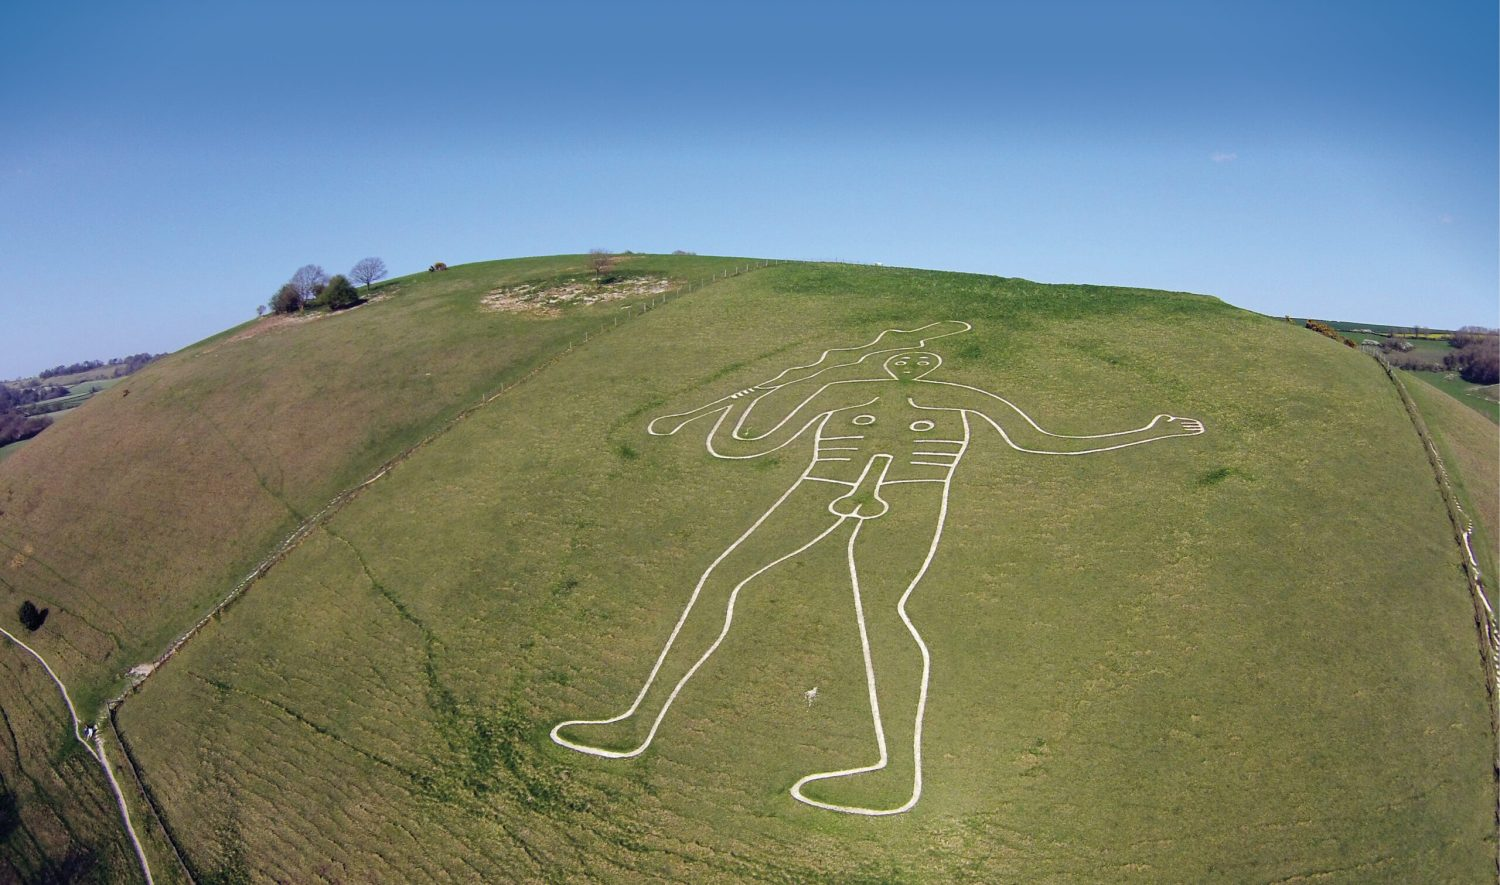 BELOW Overlooking the Dorset landscape, the Cerne Abbas Giant has long been one of the county's most-distinctive landmarks but precisely how old is the famous hill figure?